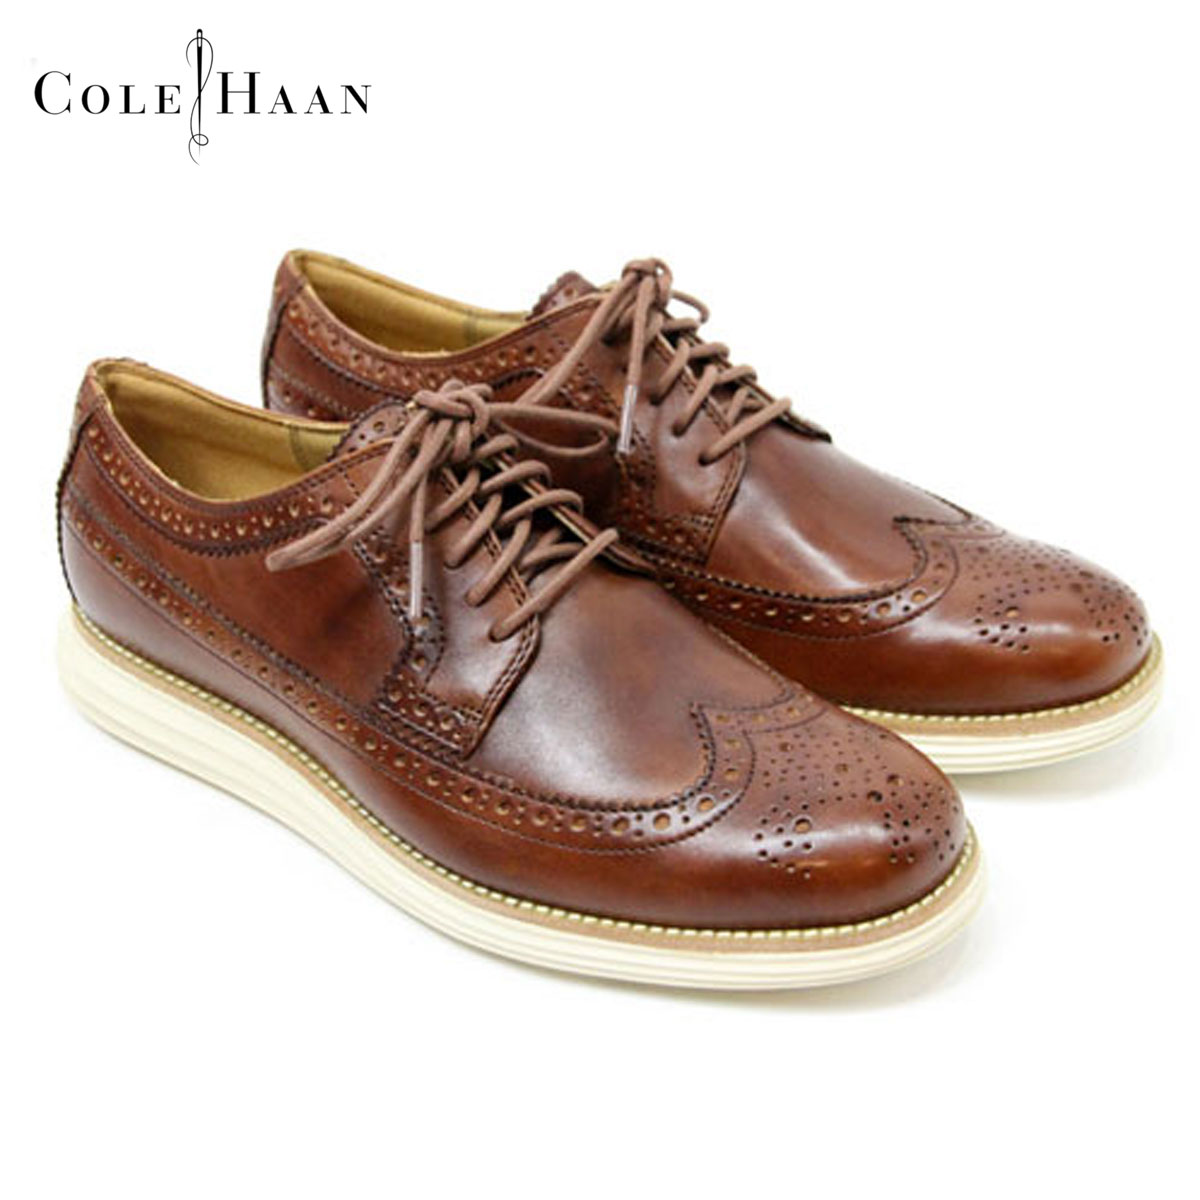 Rakuten Ichiba shop MIXON | Rakuten Global Market: Cole Haan COLE HAAN  genuine dress shoes LUNARGRAND WING. 10P30Nov14 TIP C13739 (WOODBURY)